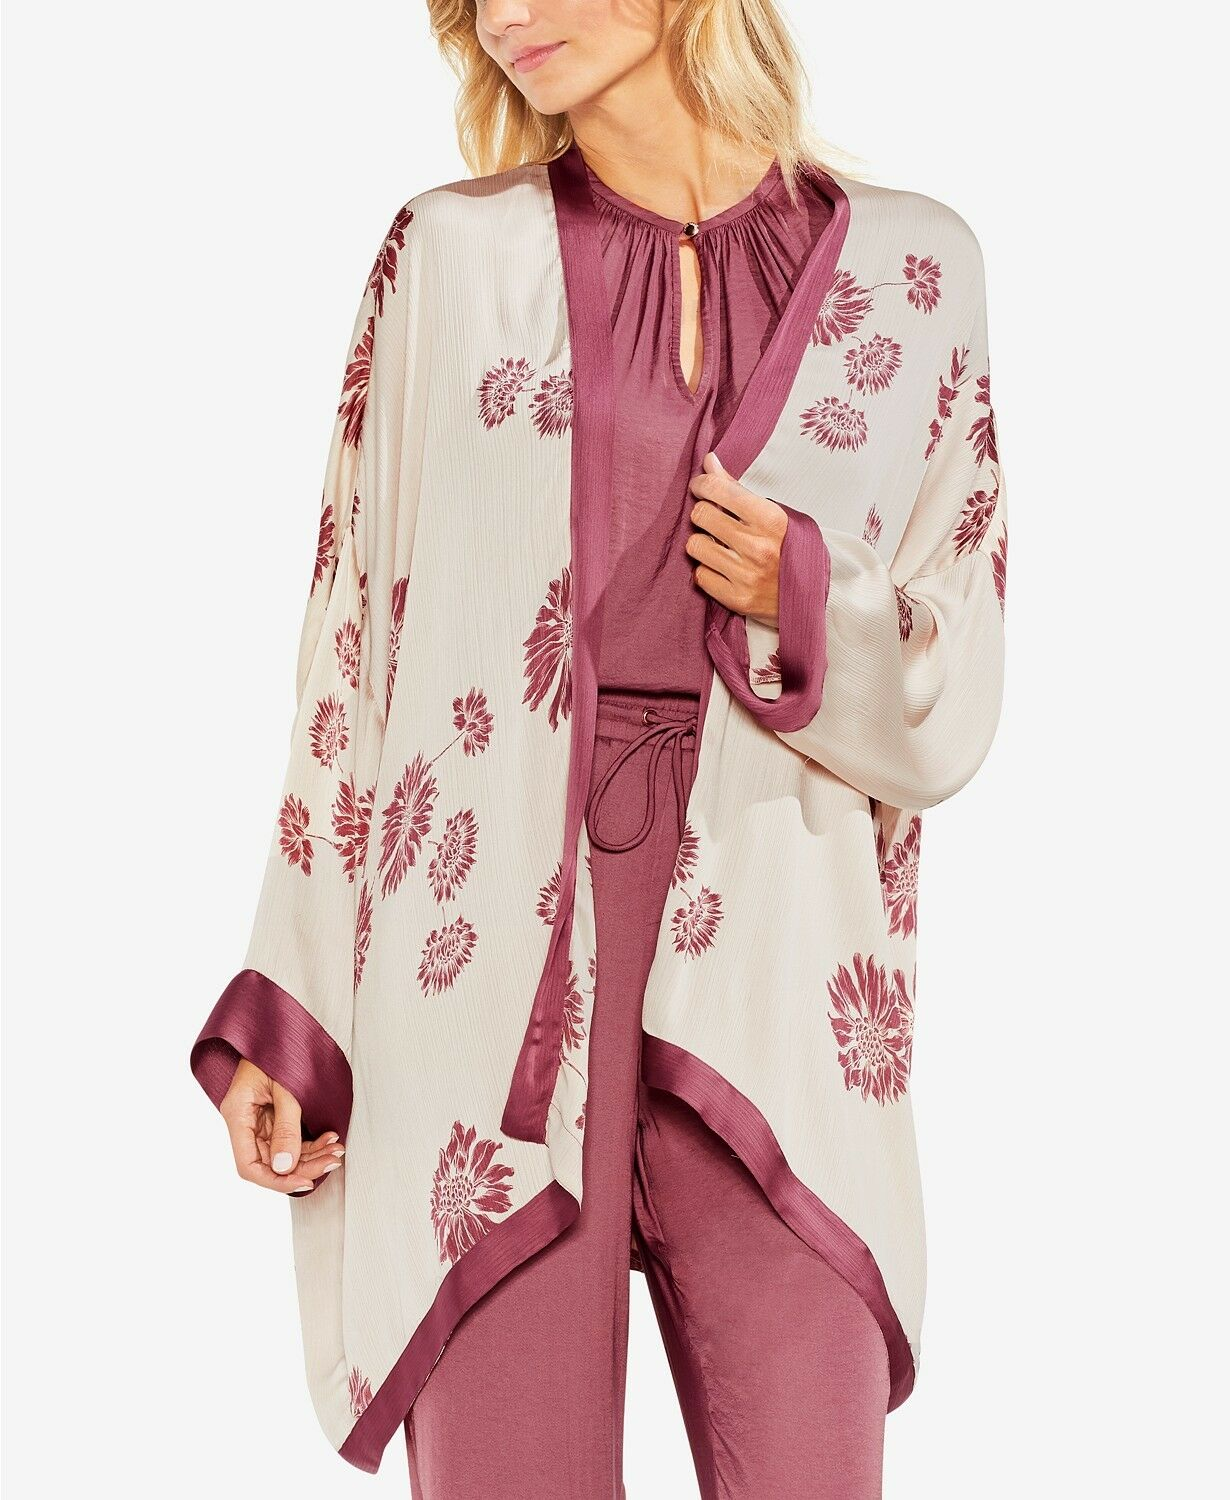 240 VINCE CASUAL CAMUTO Donna IVORY rosa OPEN FRONT FLORAL CASUAL VINCE CARDIGAN SIZE XXS 5e0378